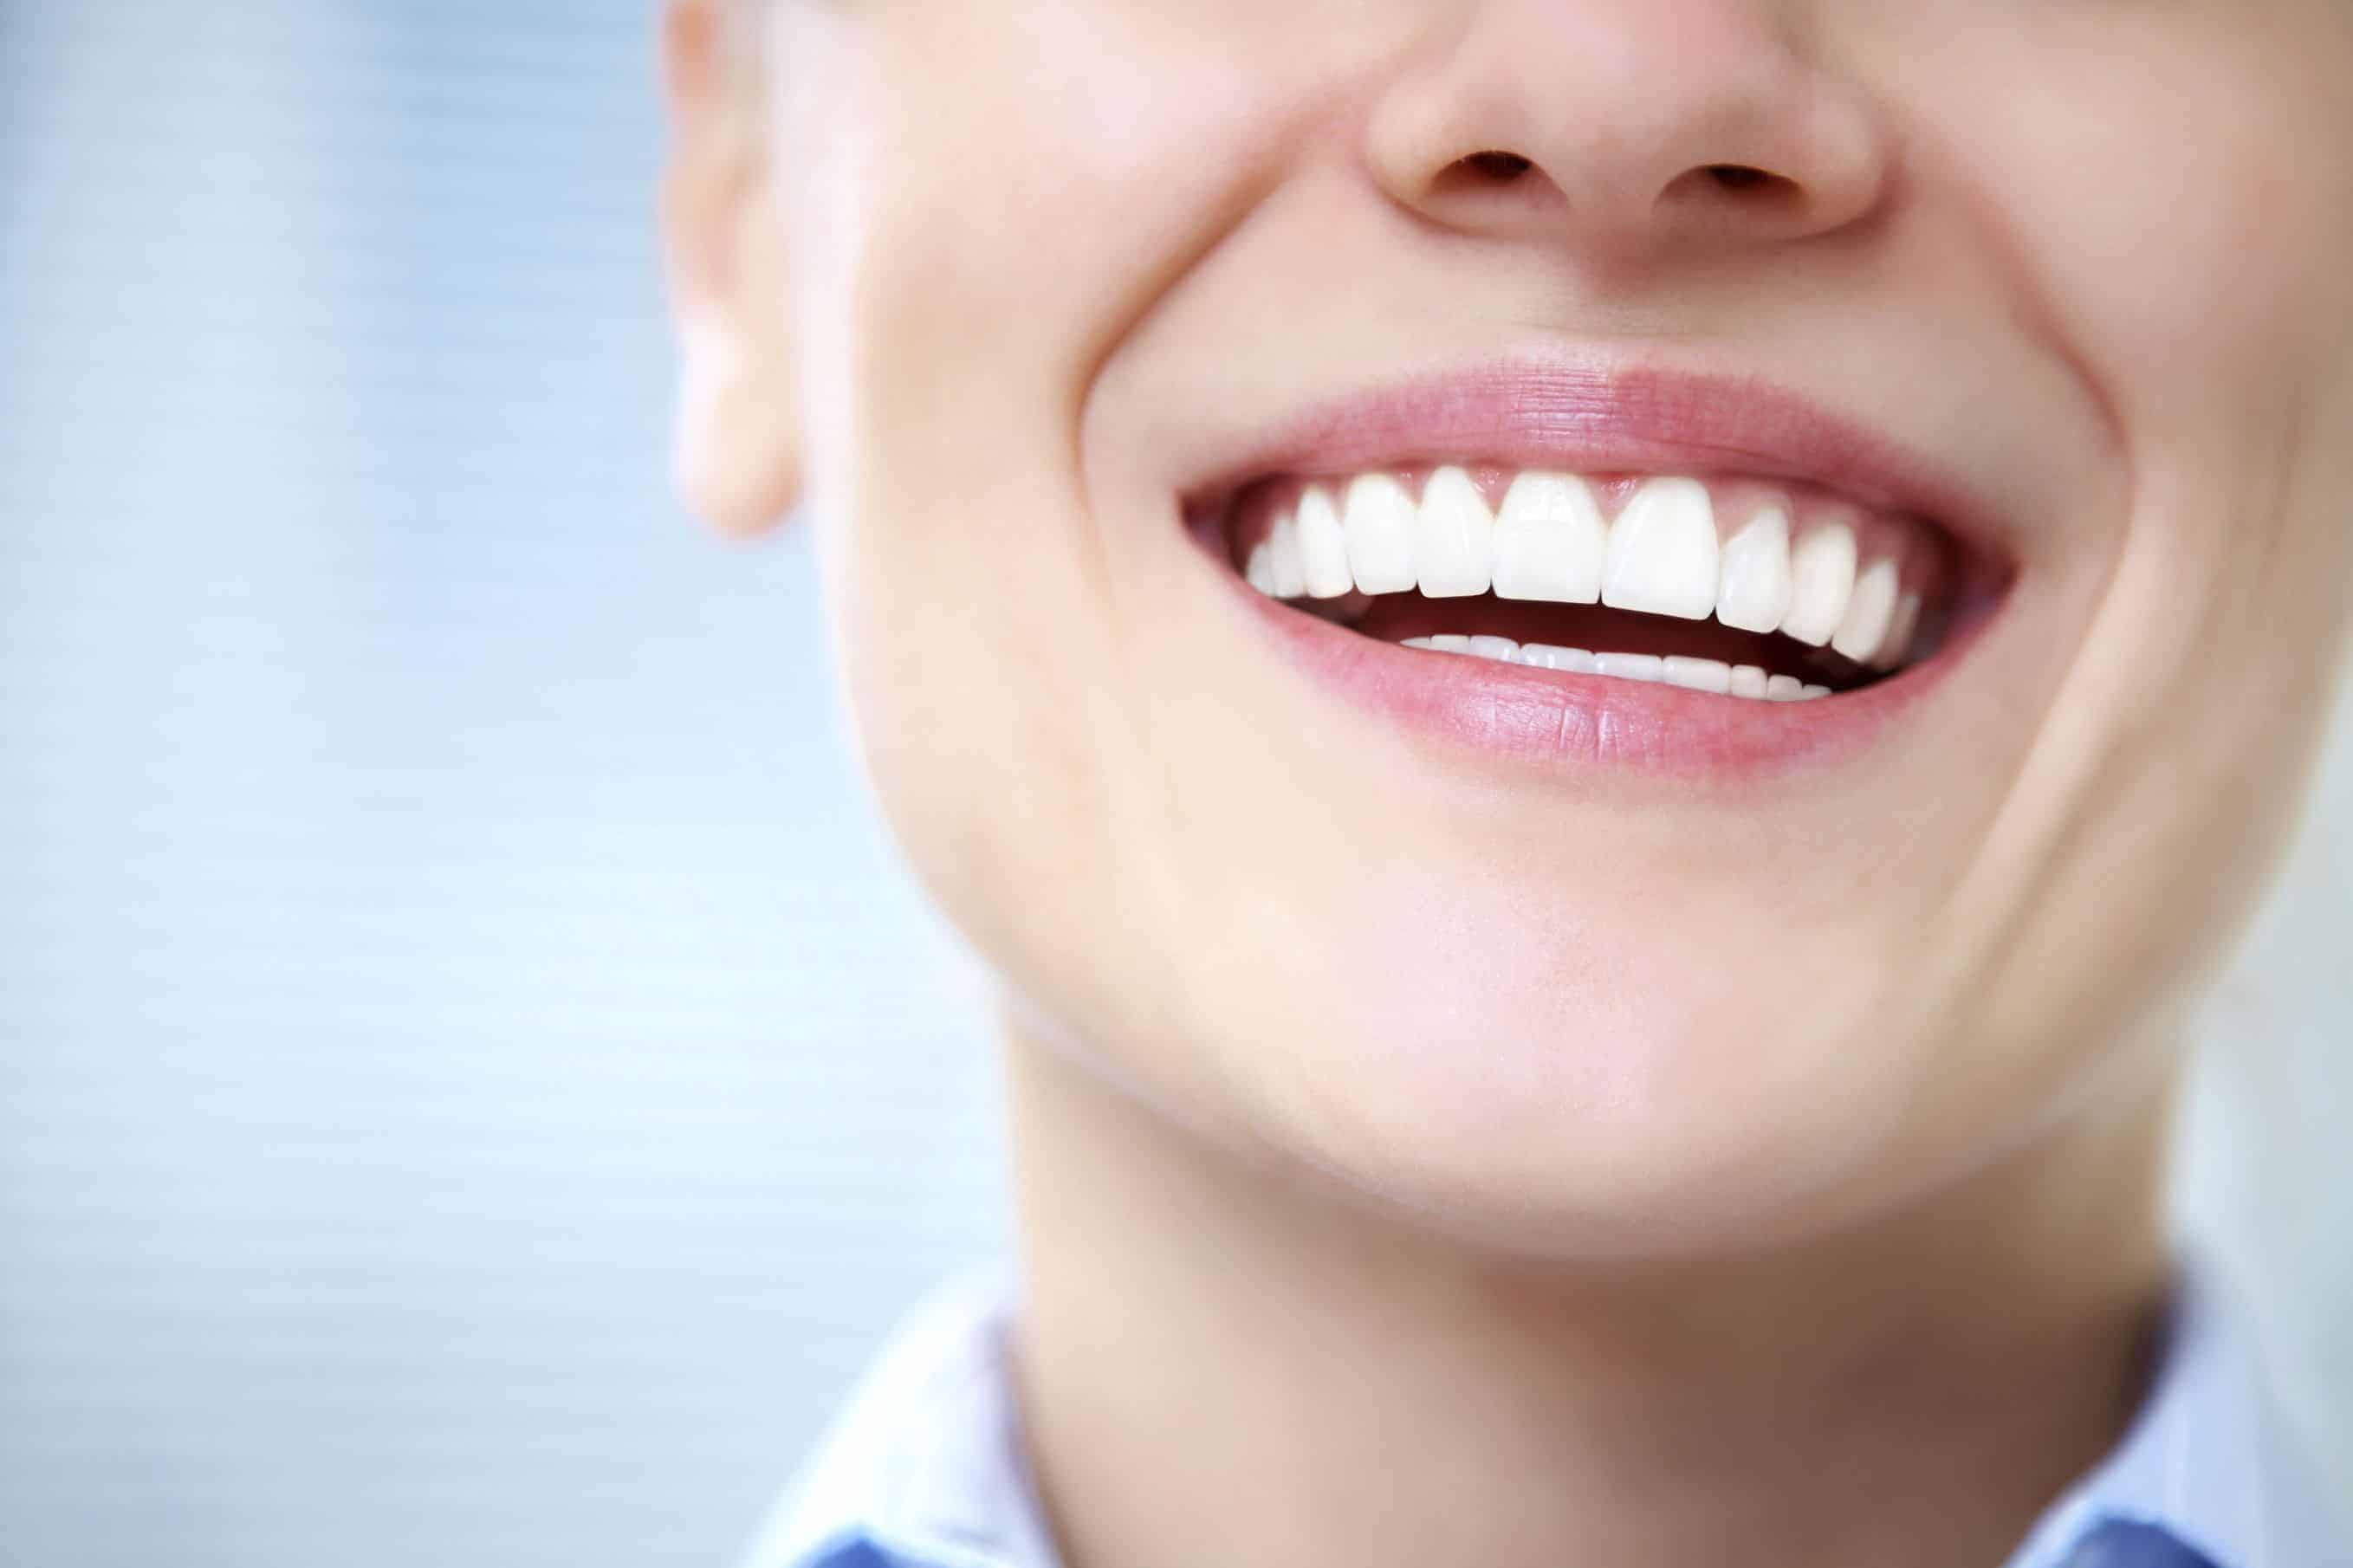 Signs You Should See Your Periodontist About Dental Implants in Jenkintown